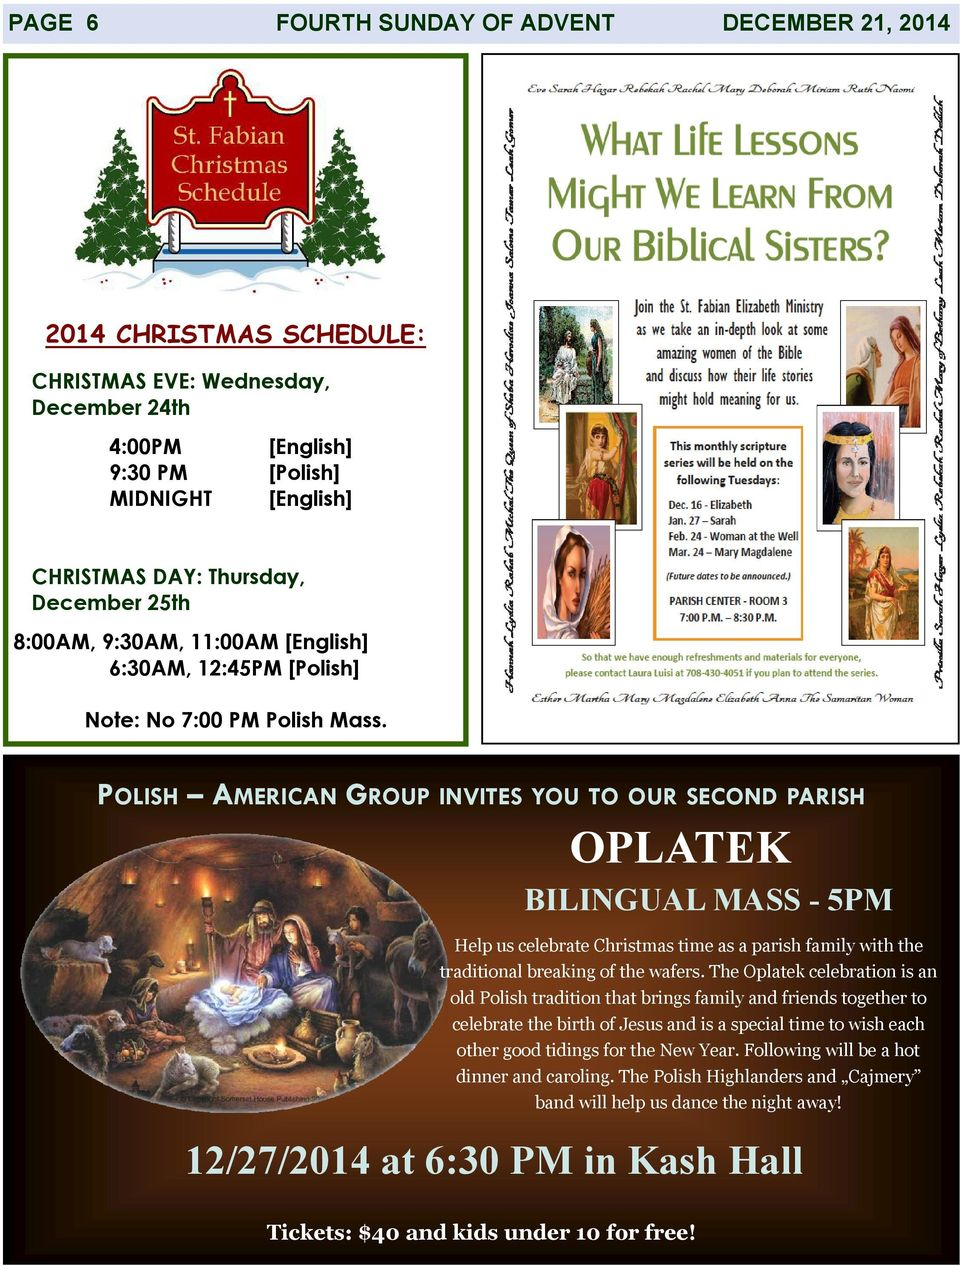 POLISH AMERICAN GROUP INVITES YOU TO OUR SECOND PARISH OPLATEK BILINGUAL MASS - 5PM Help us celebrate Christmas time as a parish family with the traditional breaking of the wafers.